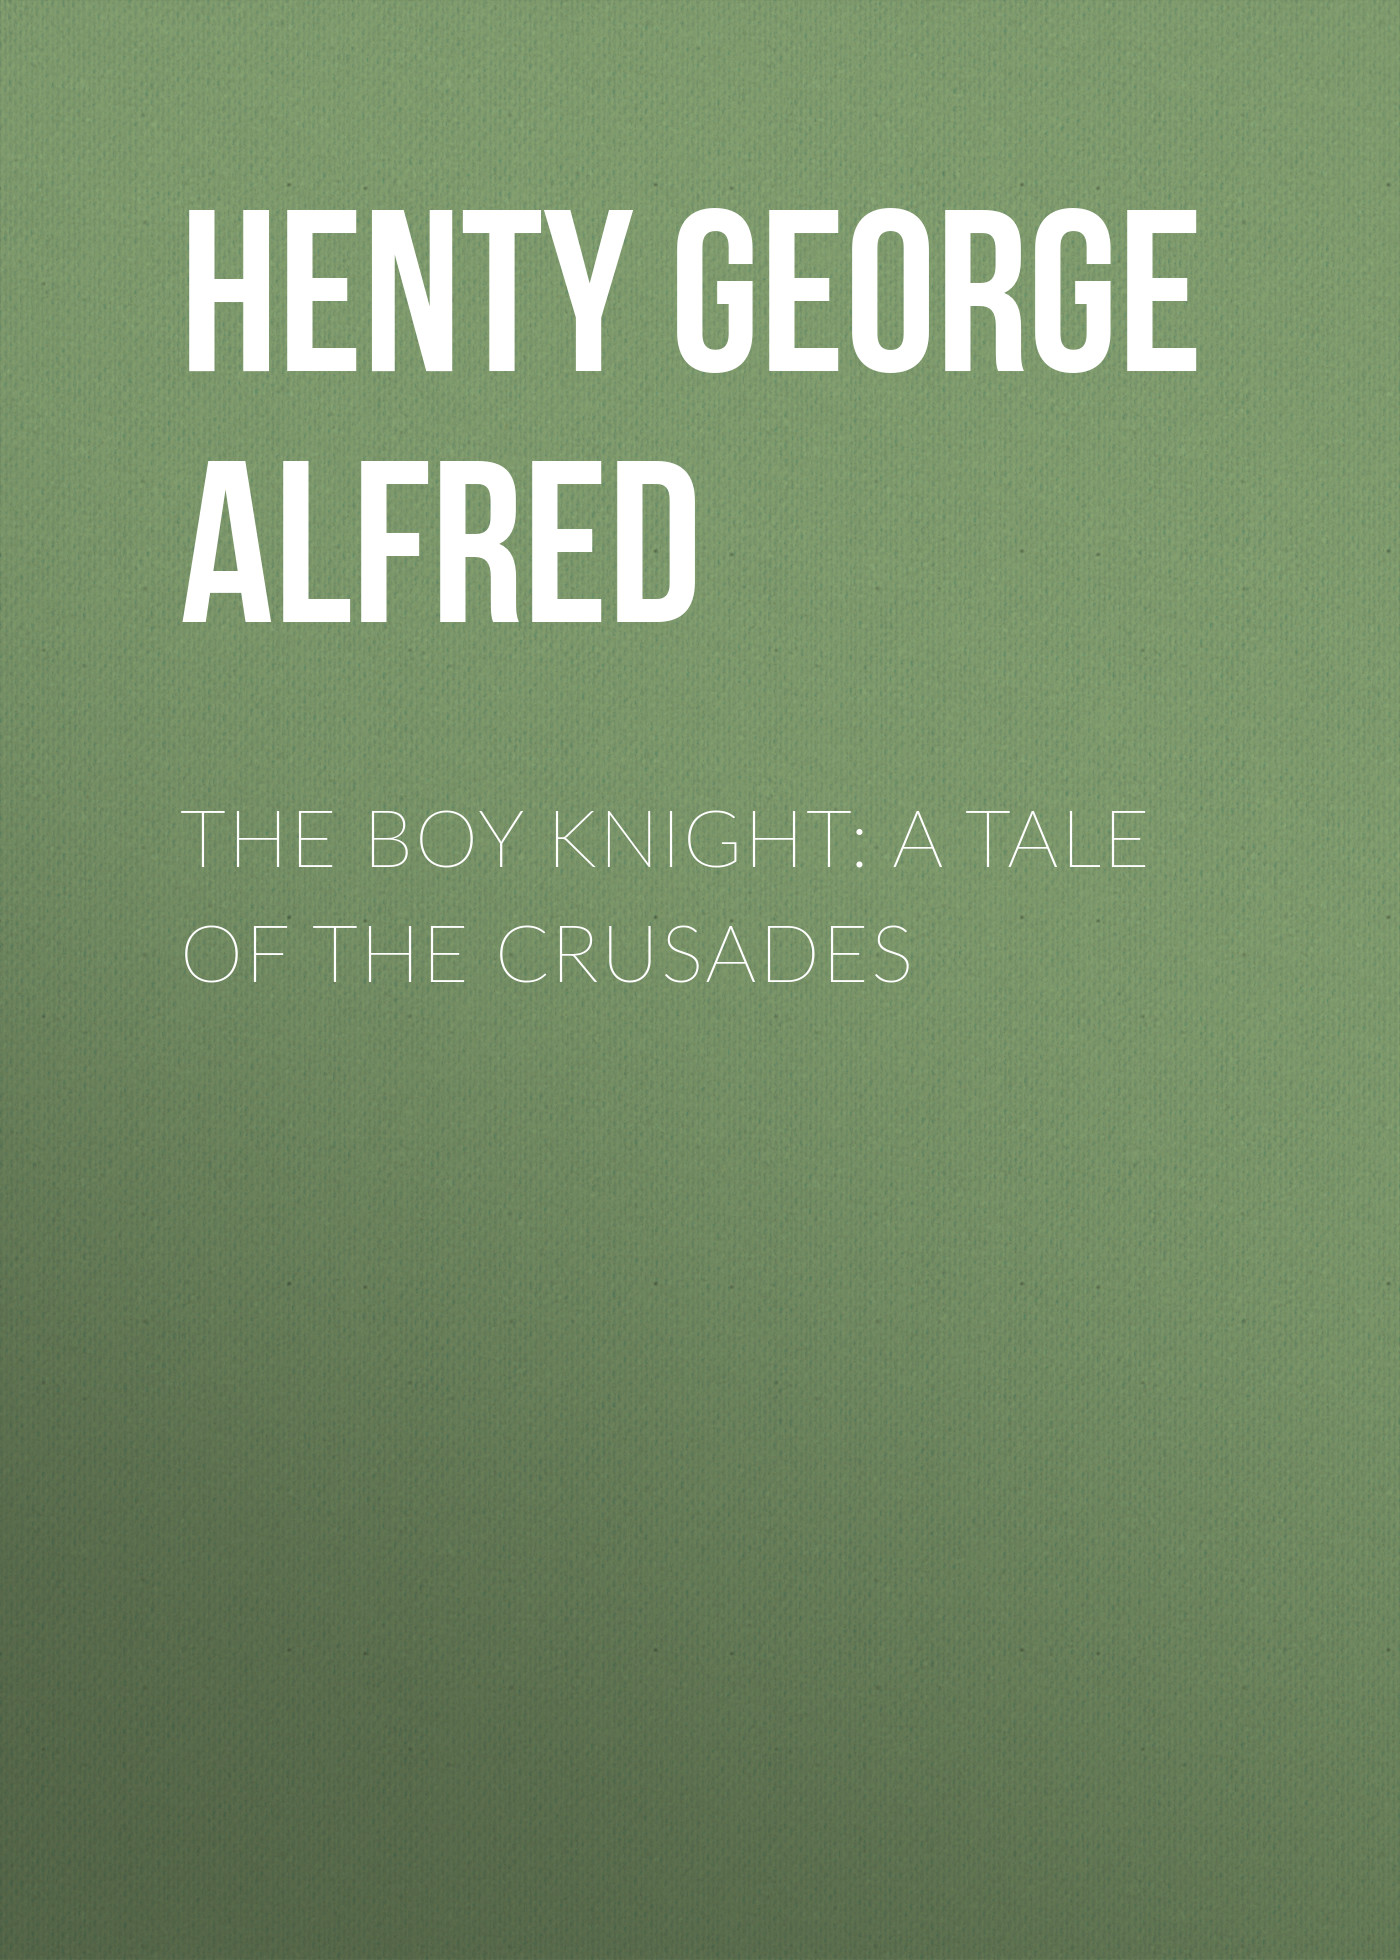 Henty George Alfred The Boy Knight: A Tale of the Crusades henty george alfred the curse of carne s hold a tale of adventure